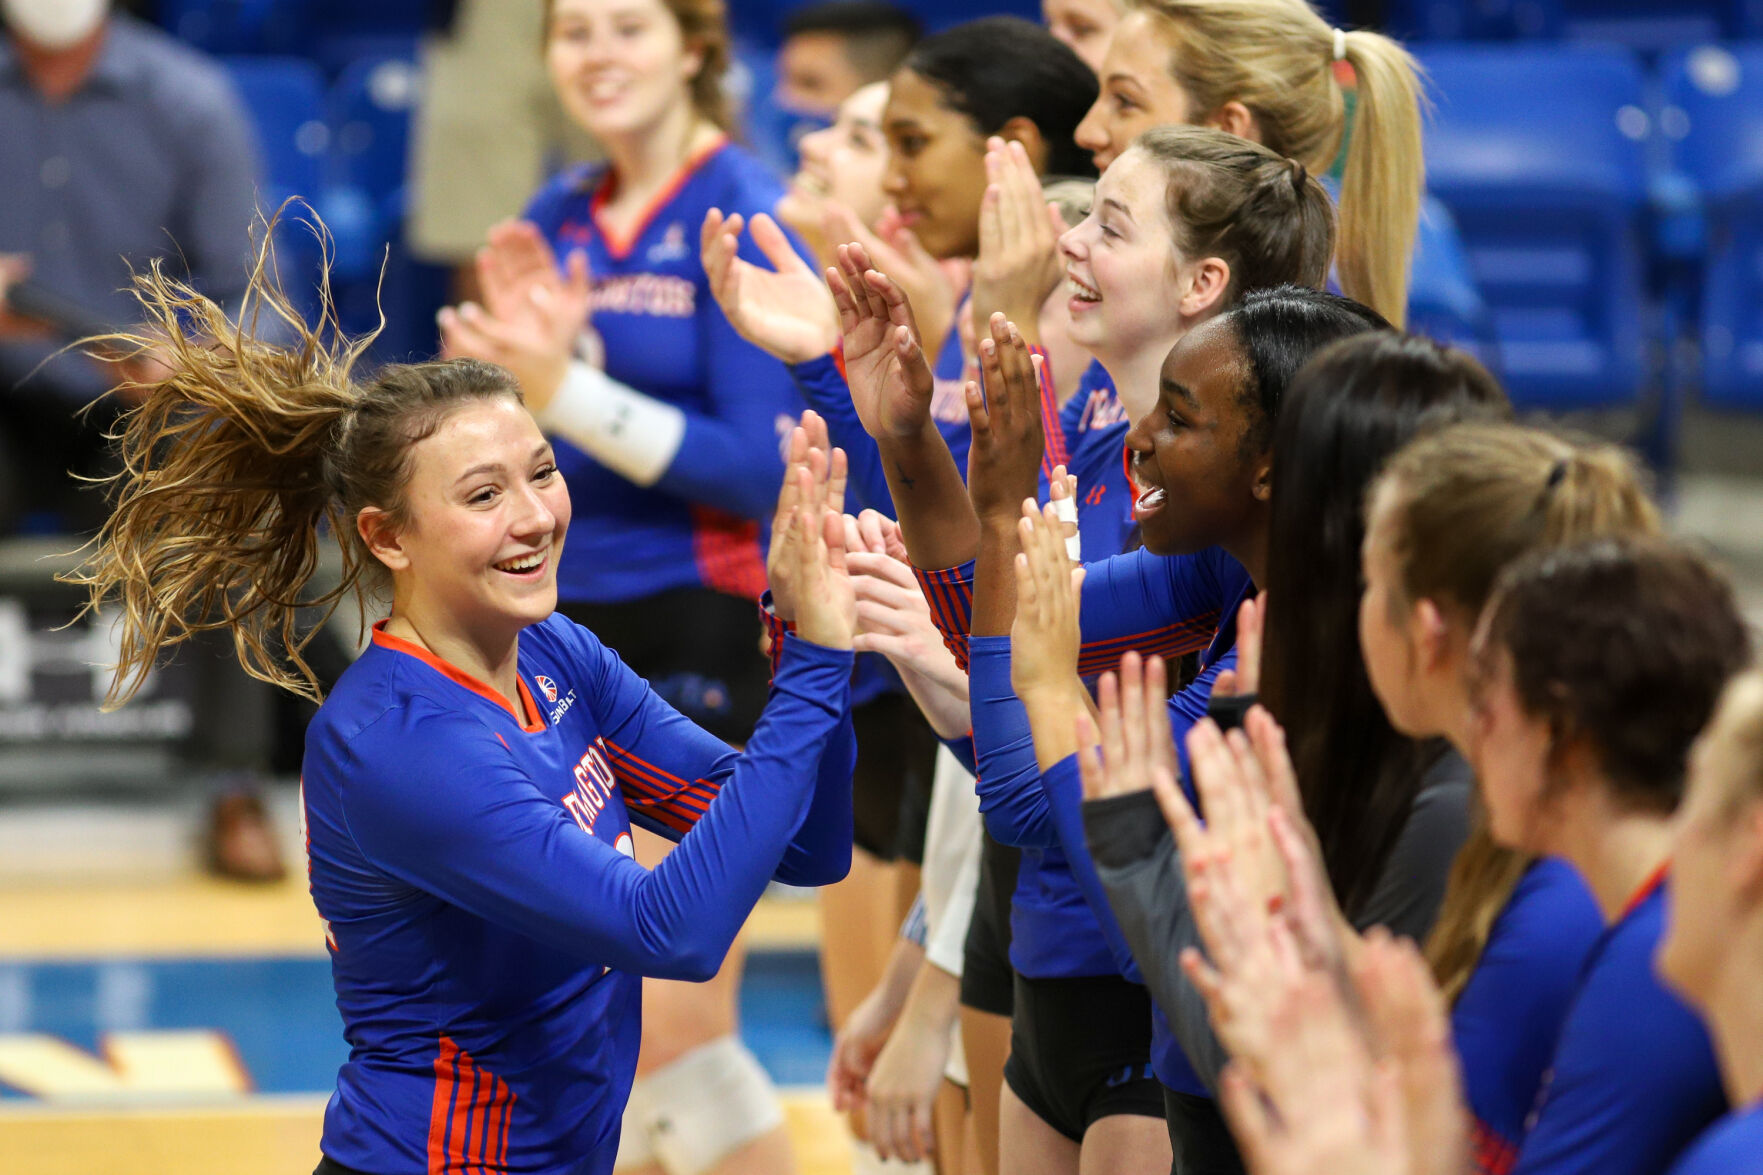 Photos: UTA volleyball wins first home matches against Arkansas State after COVID-19 postponement